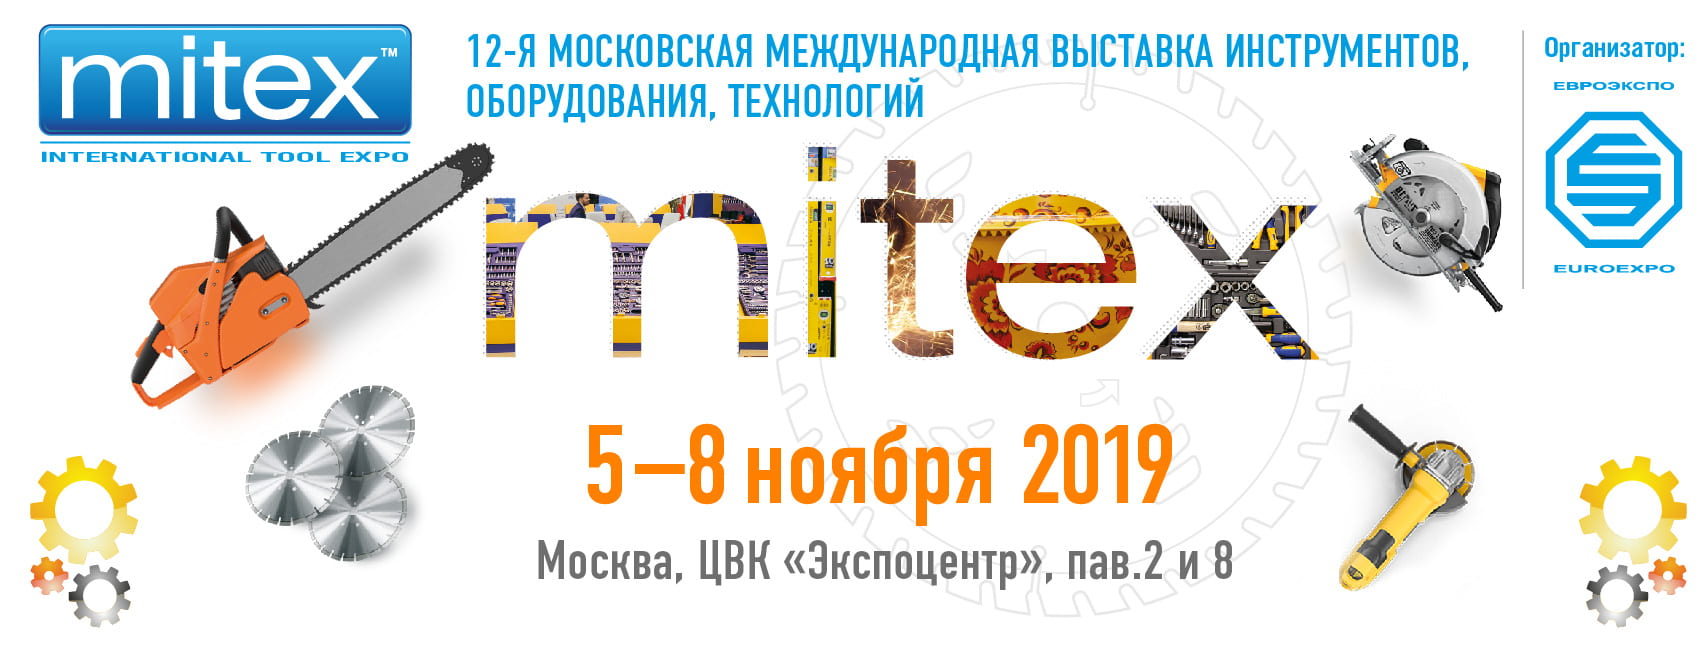 mitex-moscow-international-tools-expo-smirdex